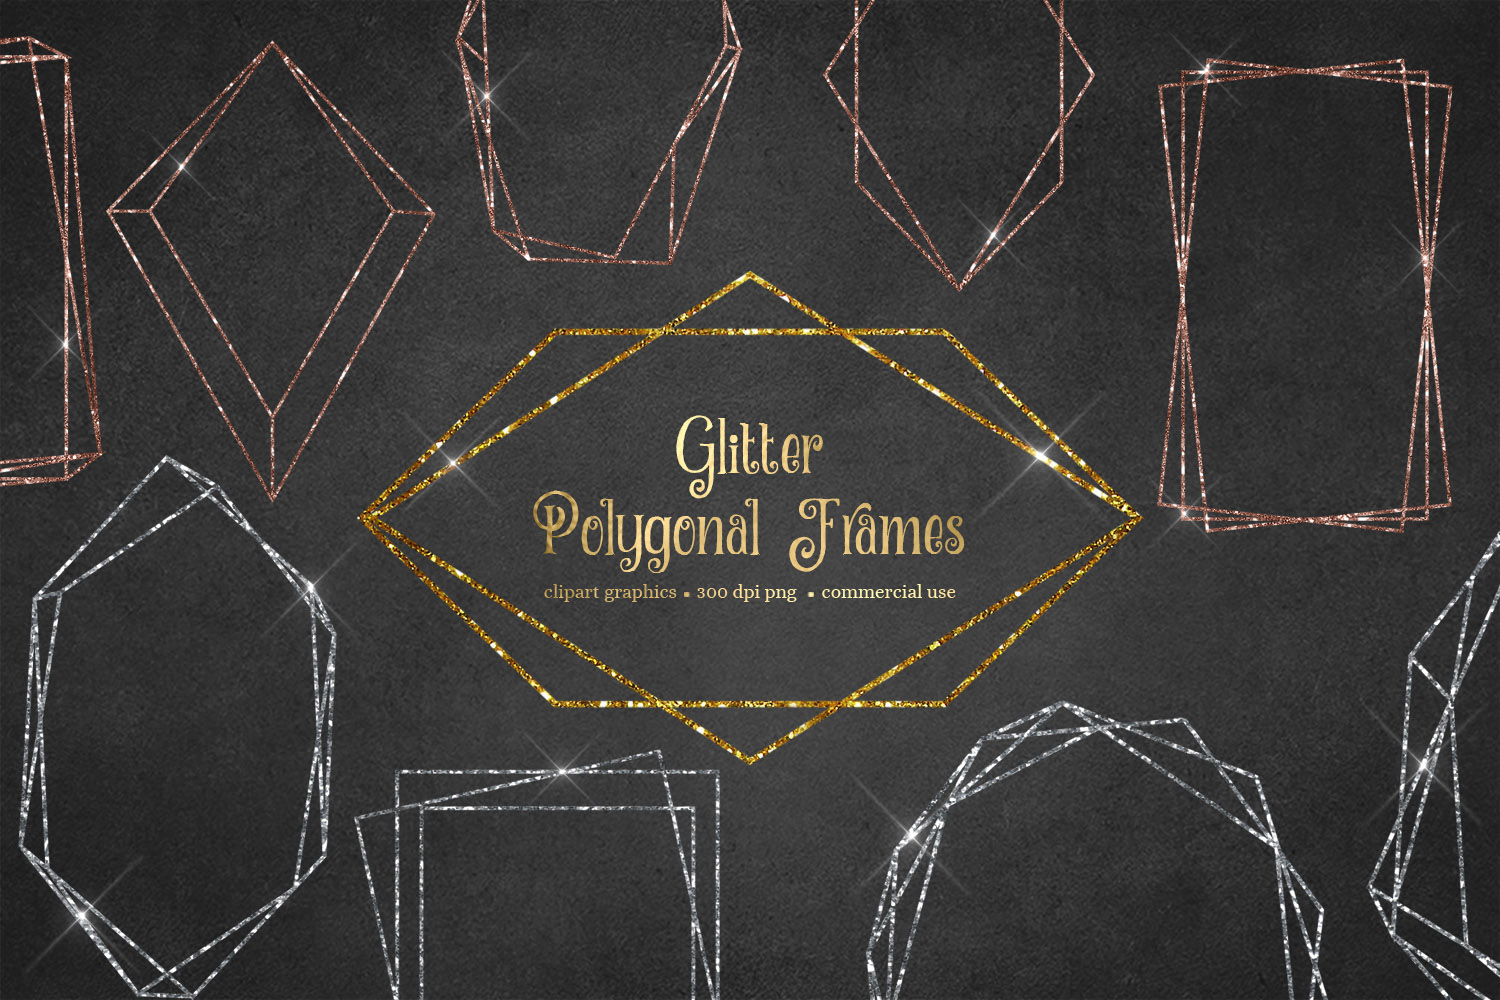 Glitter Polygonal Frames Clipart example image 1